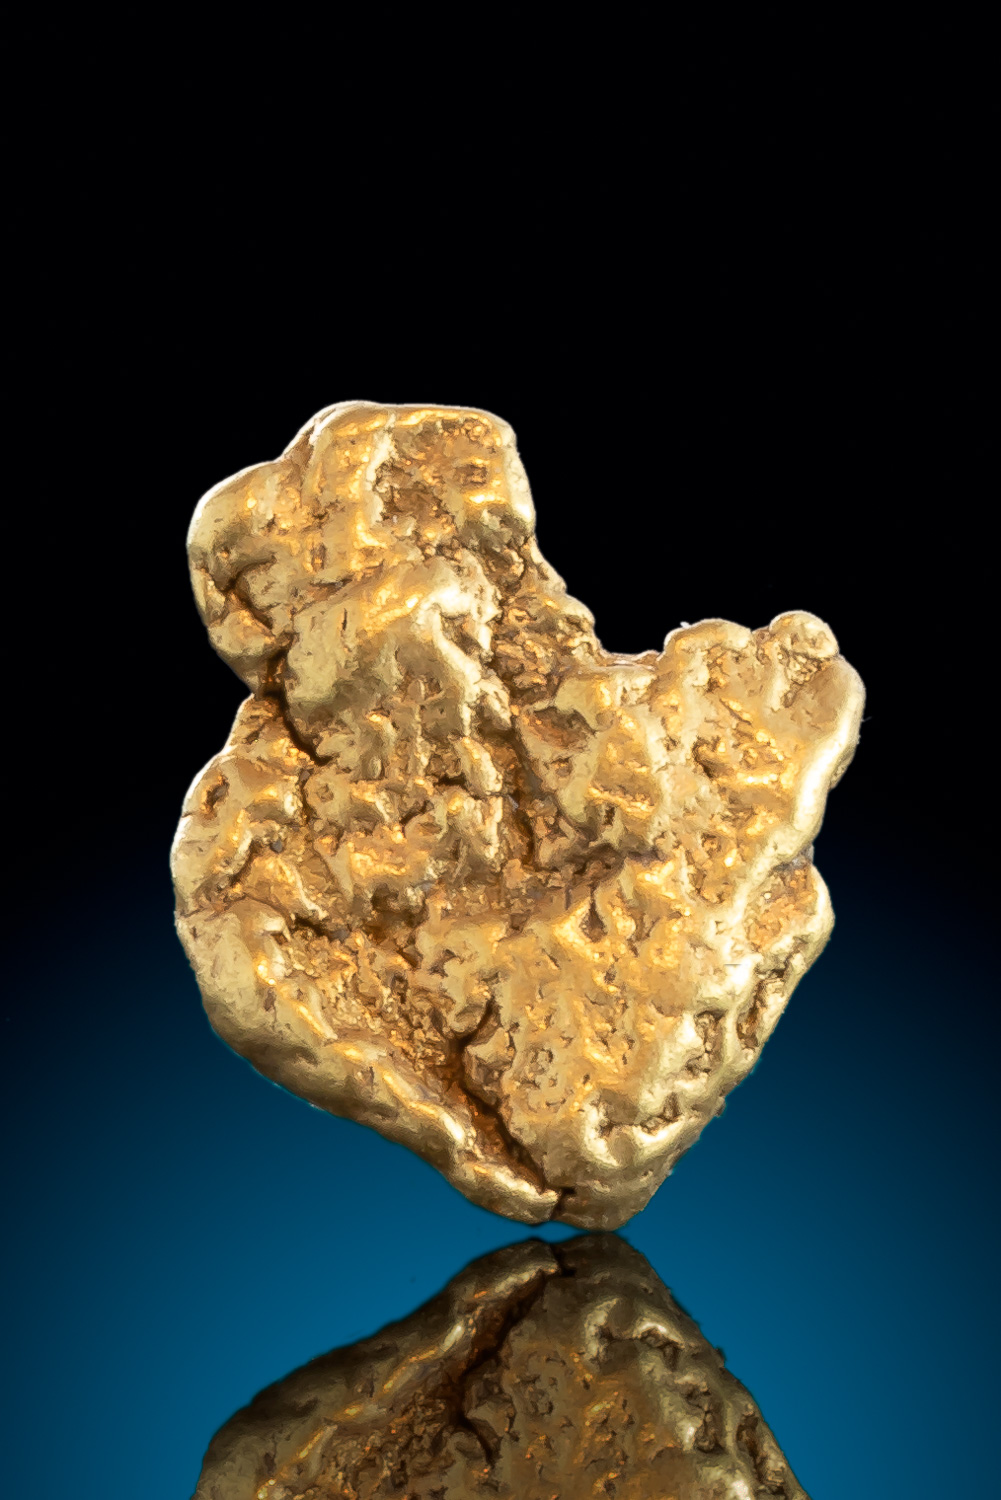 Folded Natural Leaf Gold Nugget From Alaska